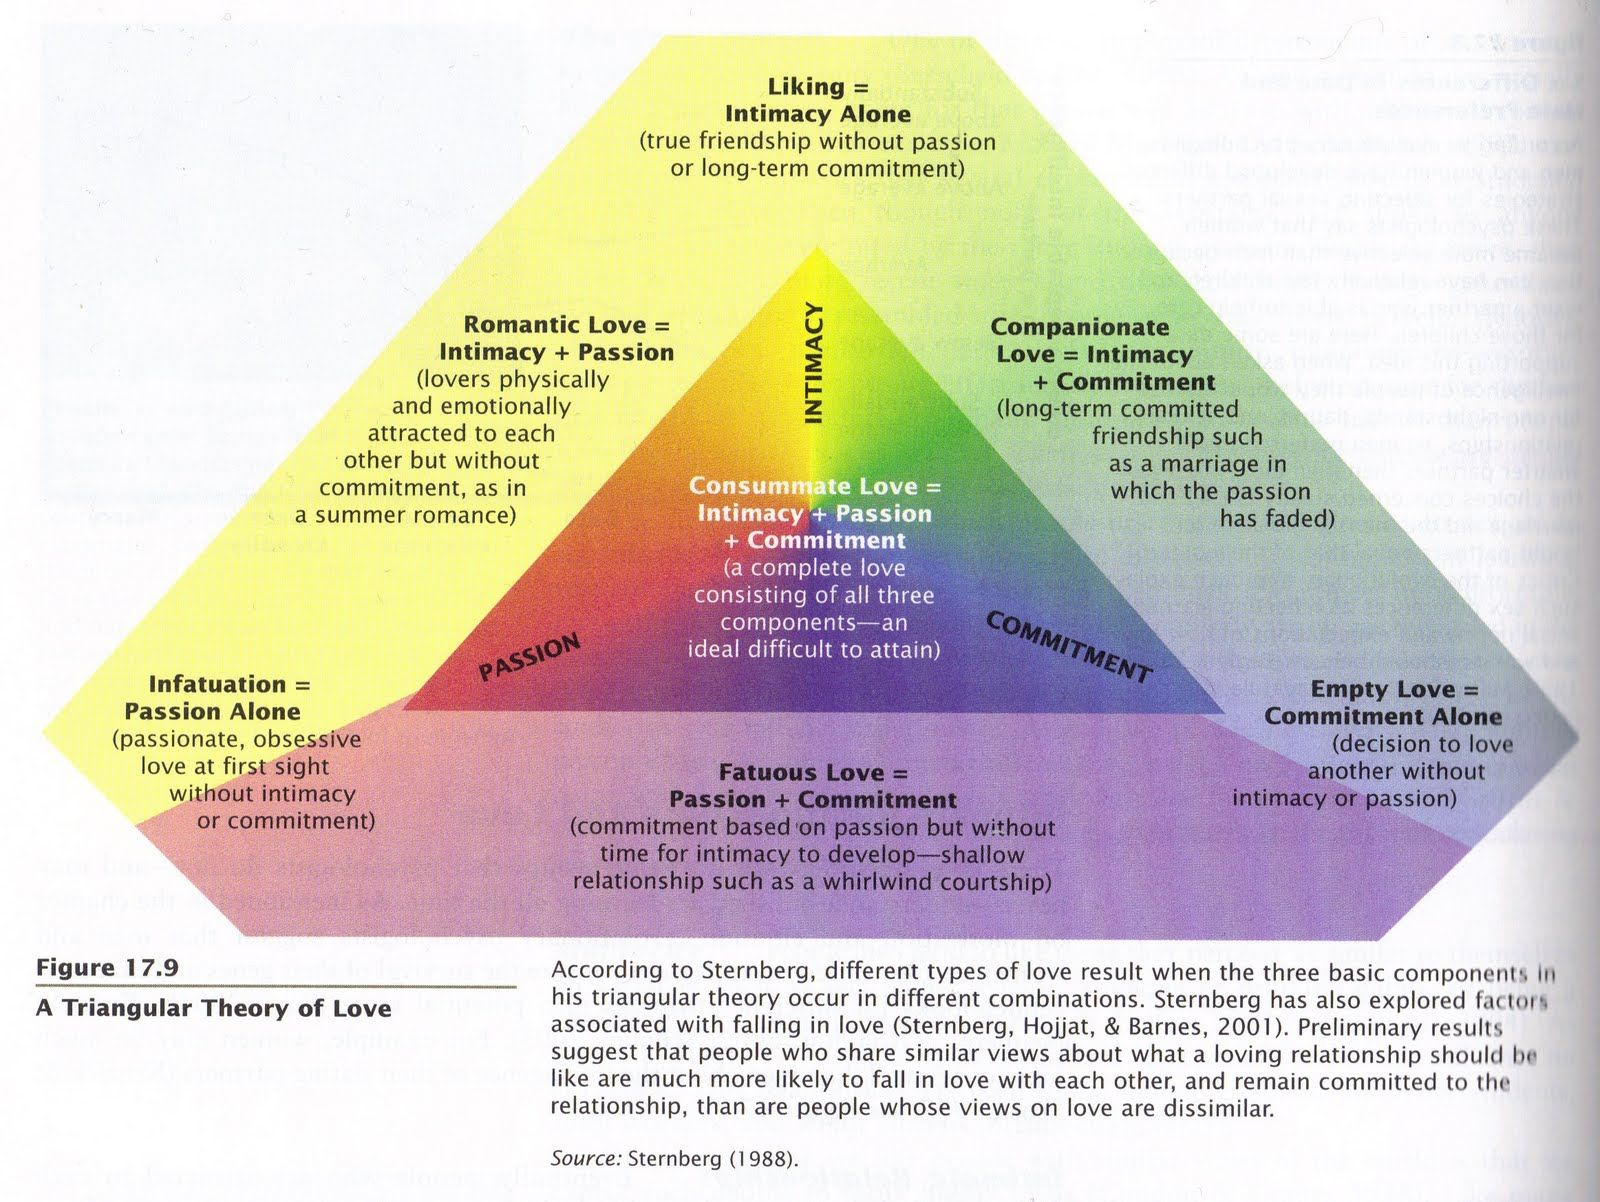 sternbergs triangular model of love